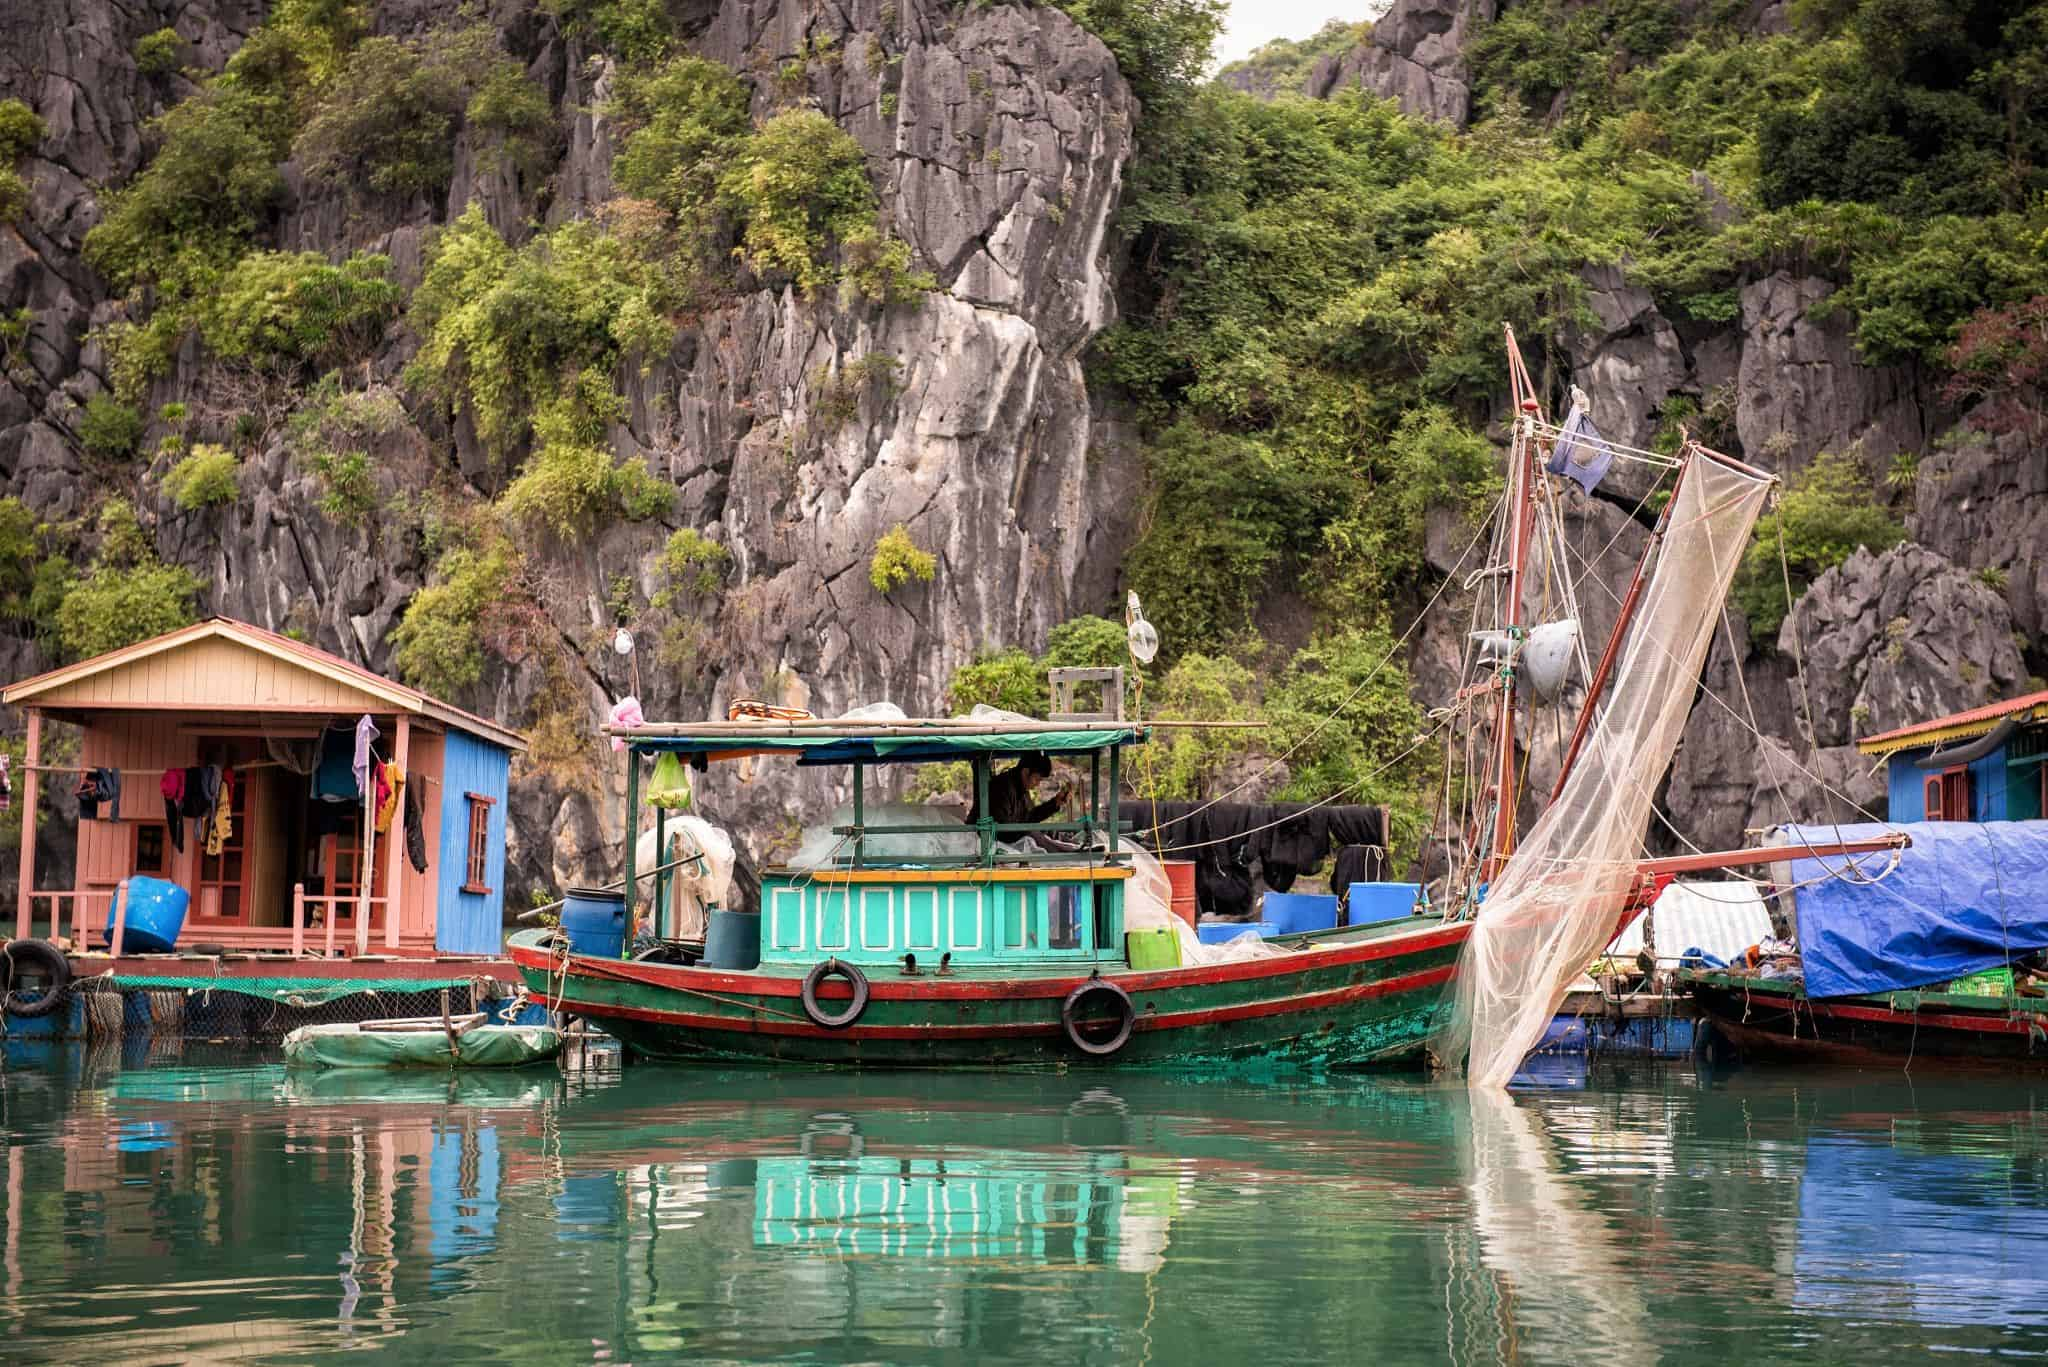 Join fishing activities in Vung Vieng fishing village